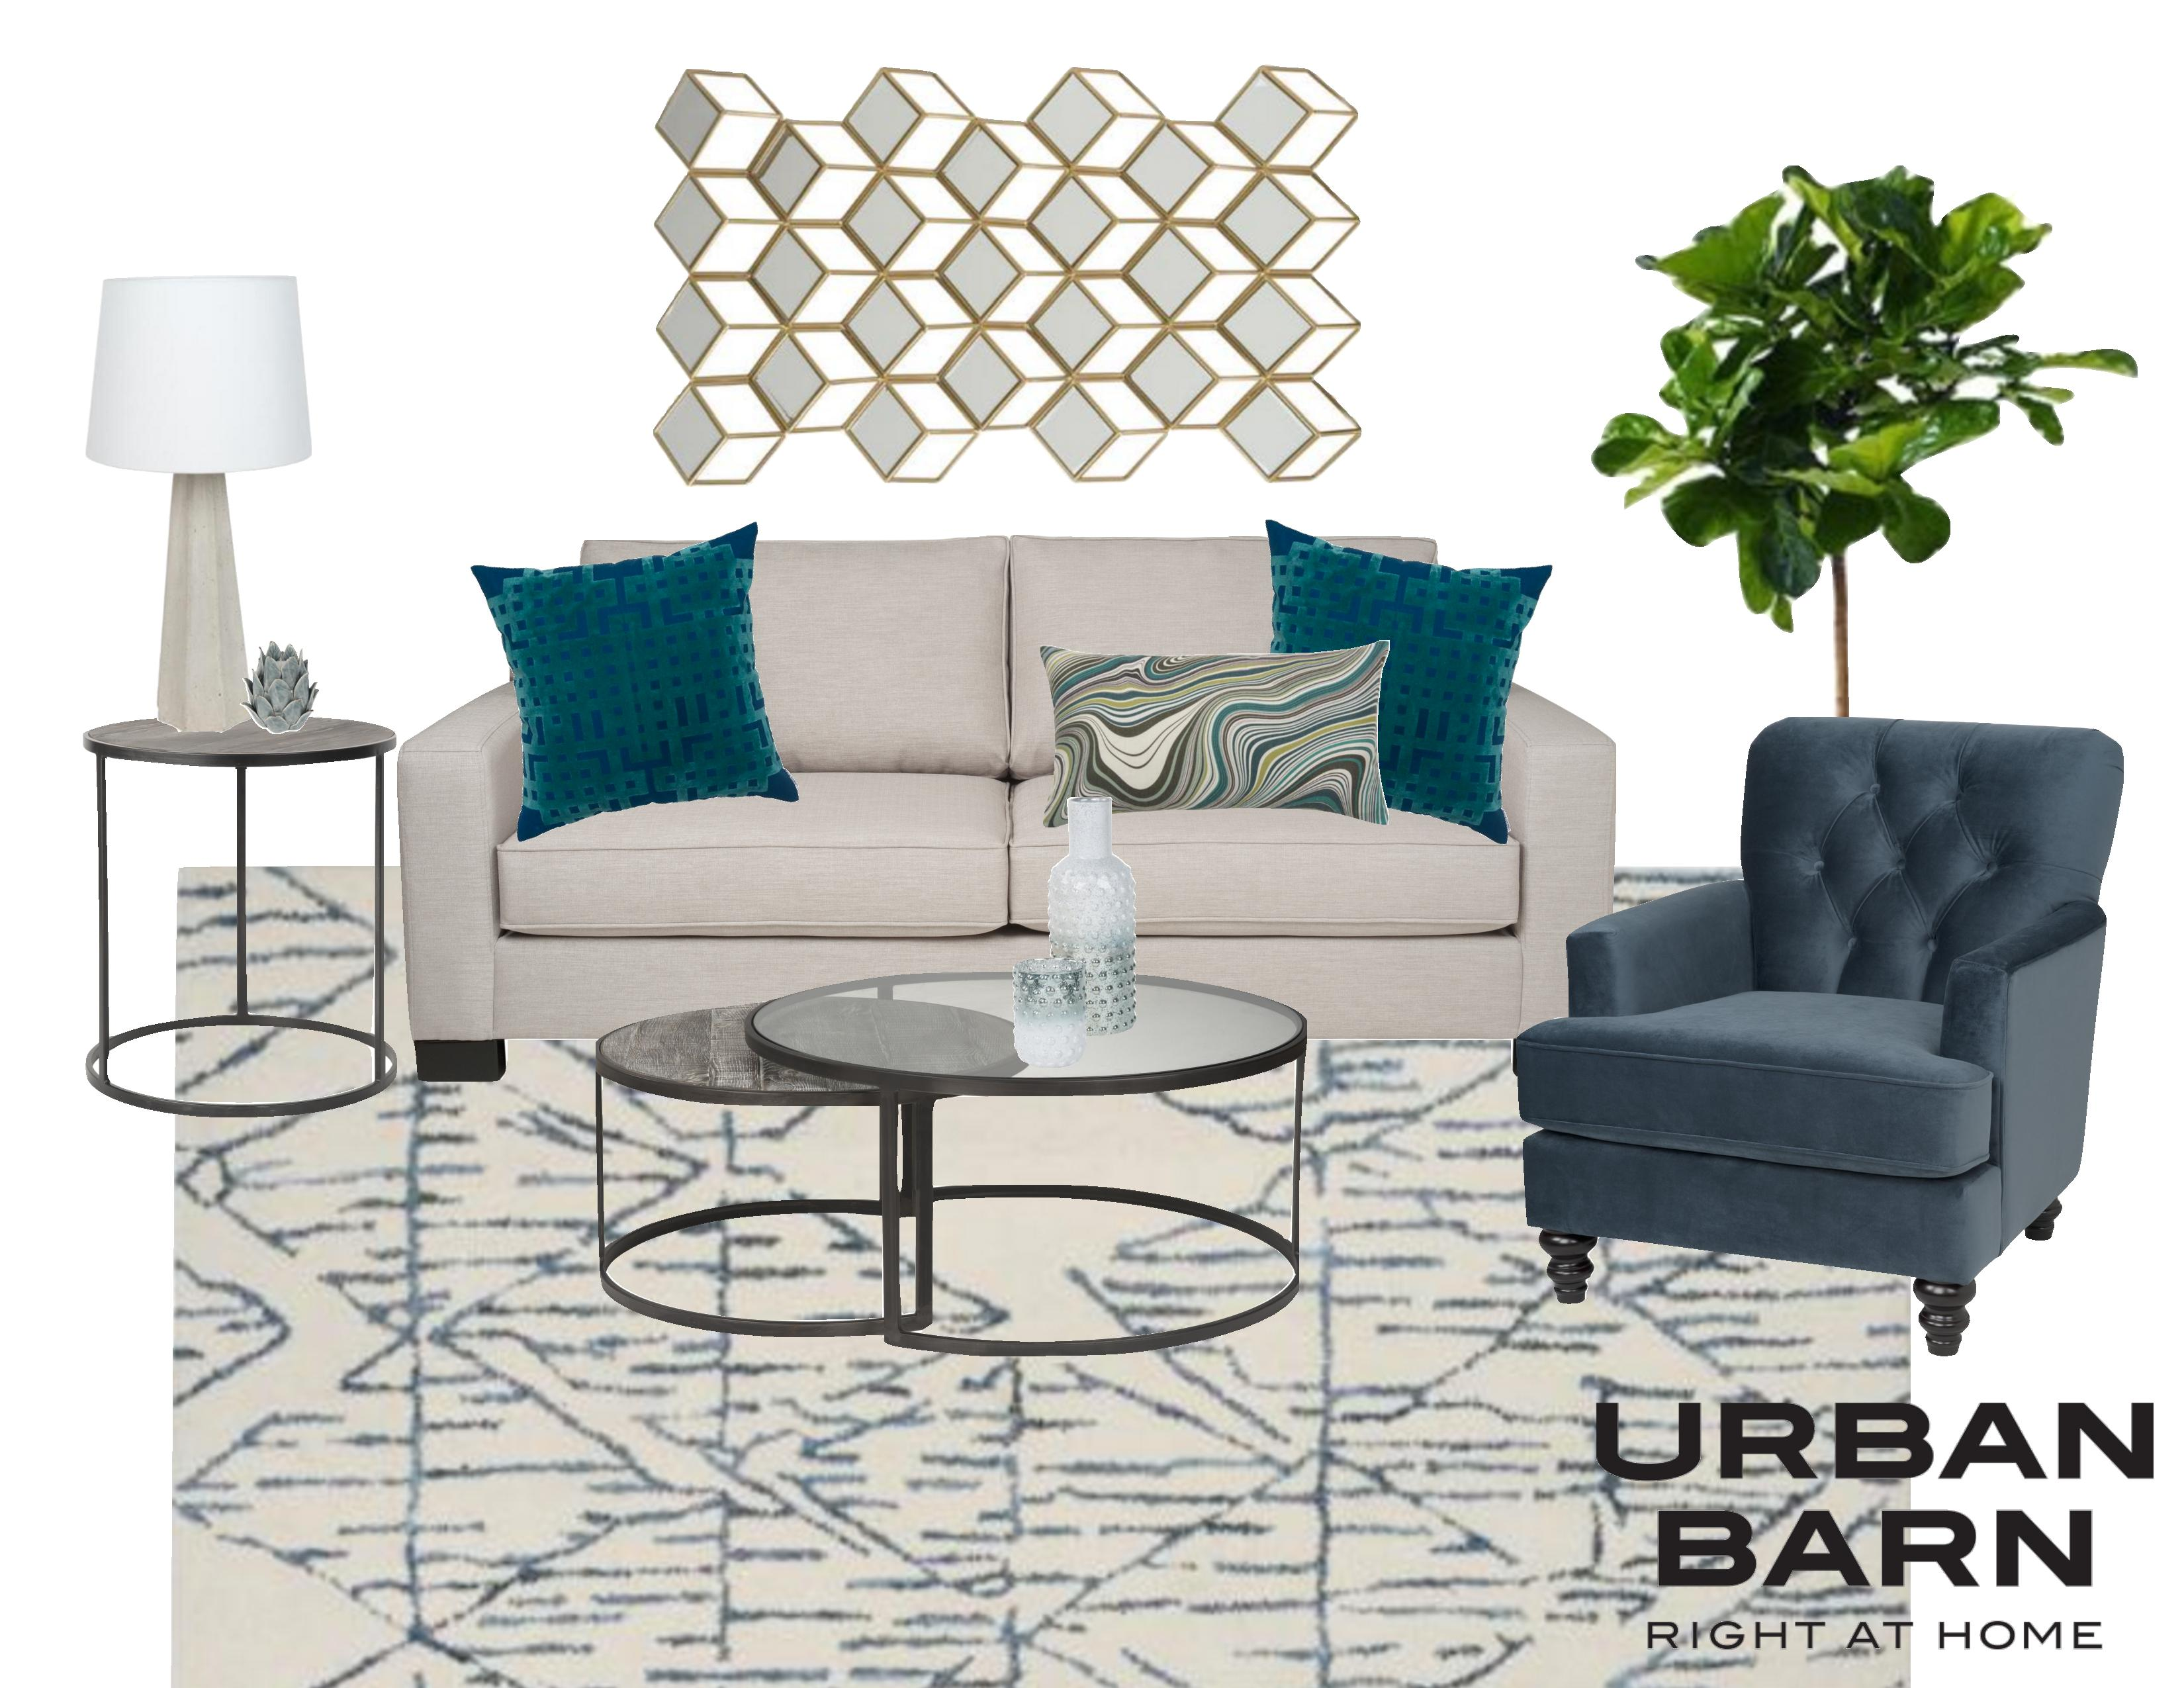 Great How To Decorate Your Condo Living Room For Under 6k With Urban. Urban Barn  Rugs Ideas Part 25